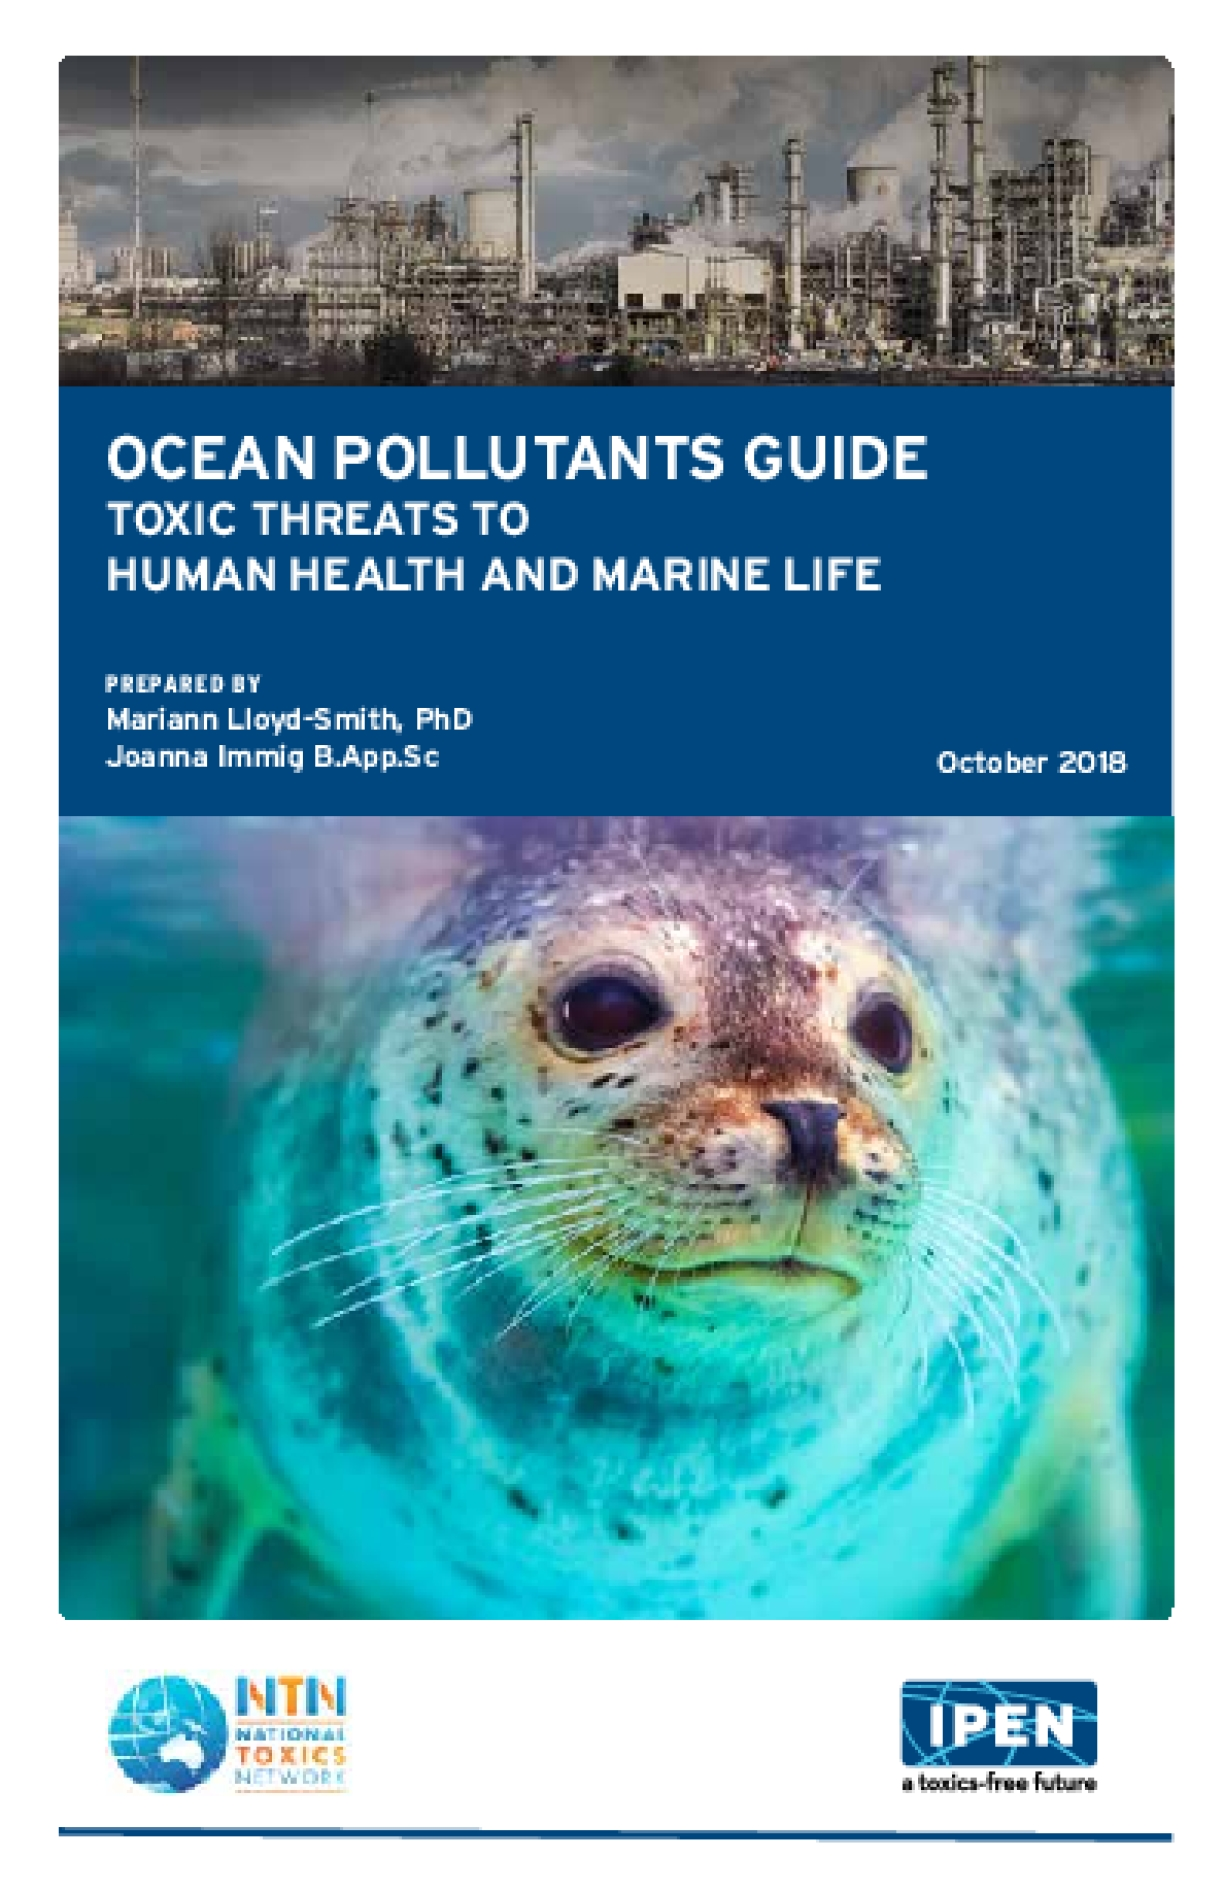 Ocean Pollutants Guide: Toxic Threats to Human Health and Marine Life